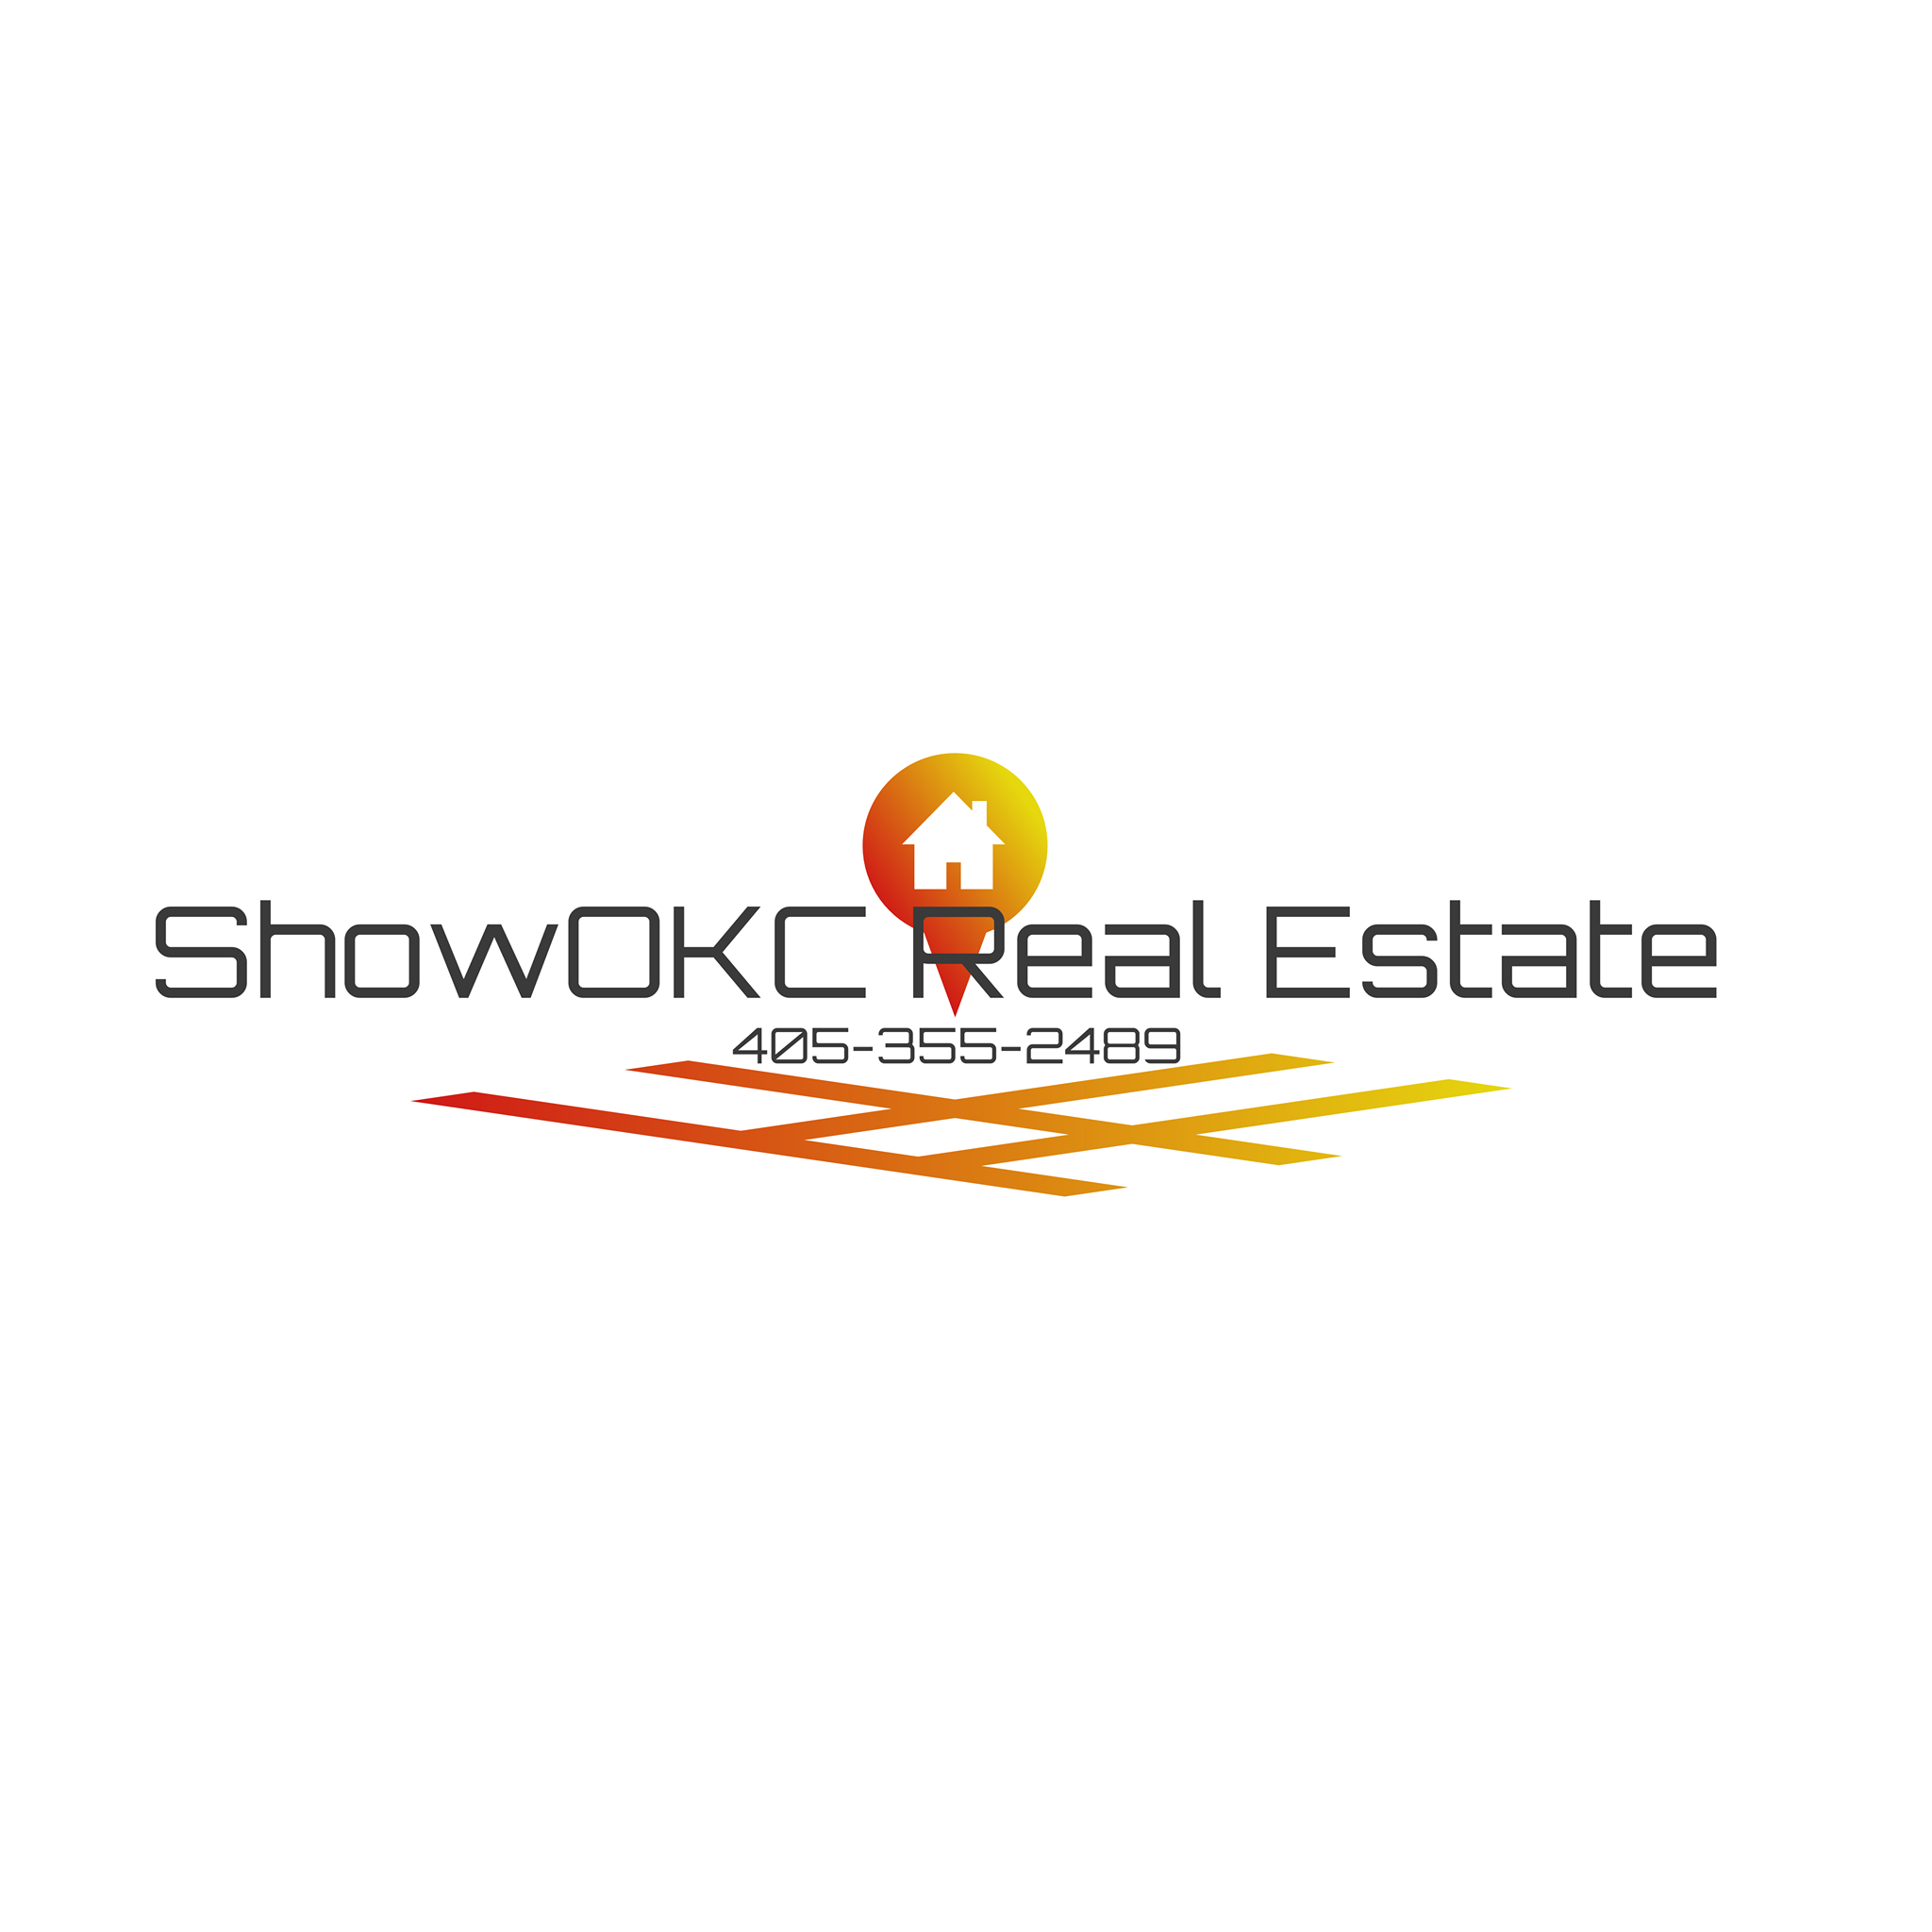 Sipes Team Realty with ShowOKC Real Estate